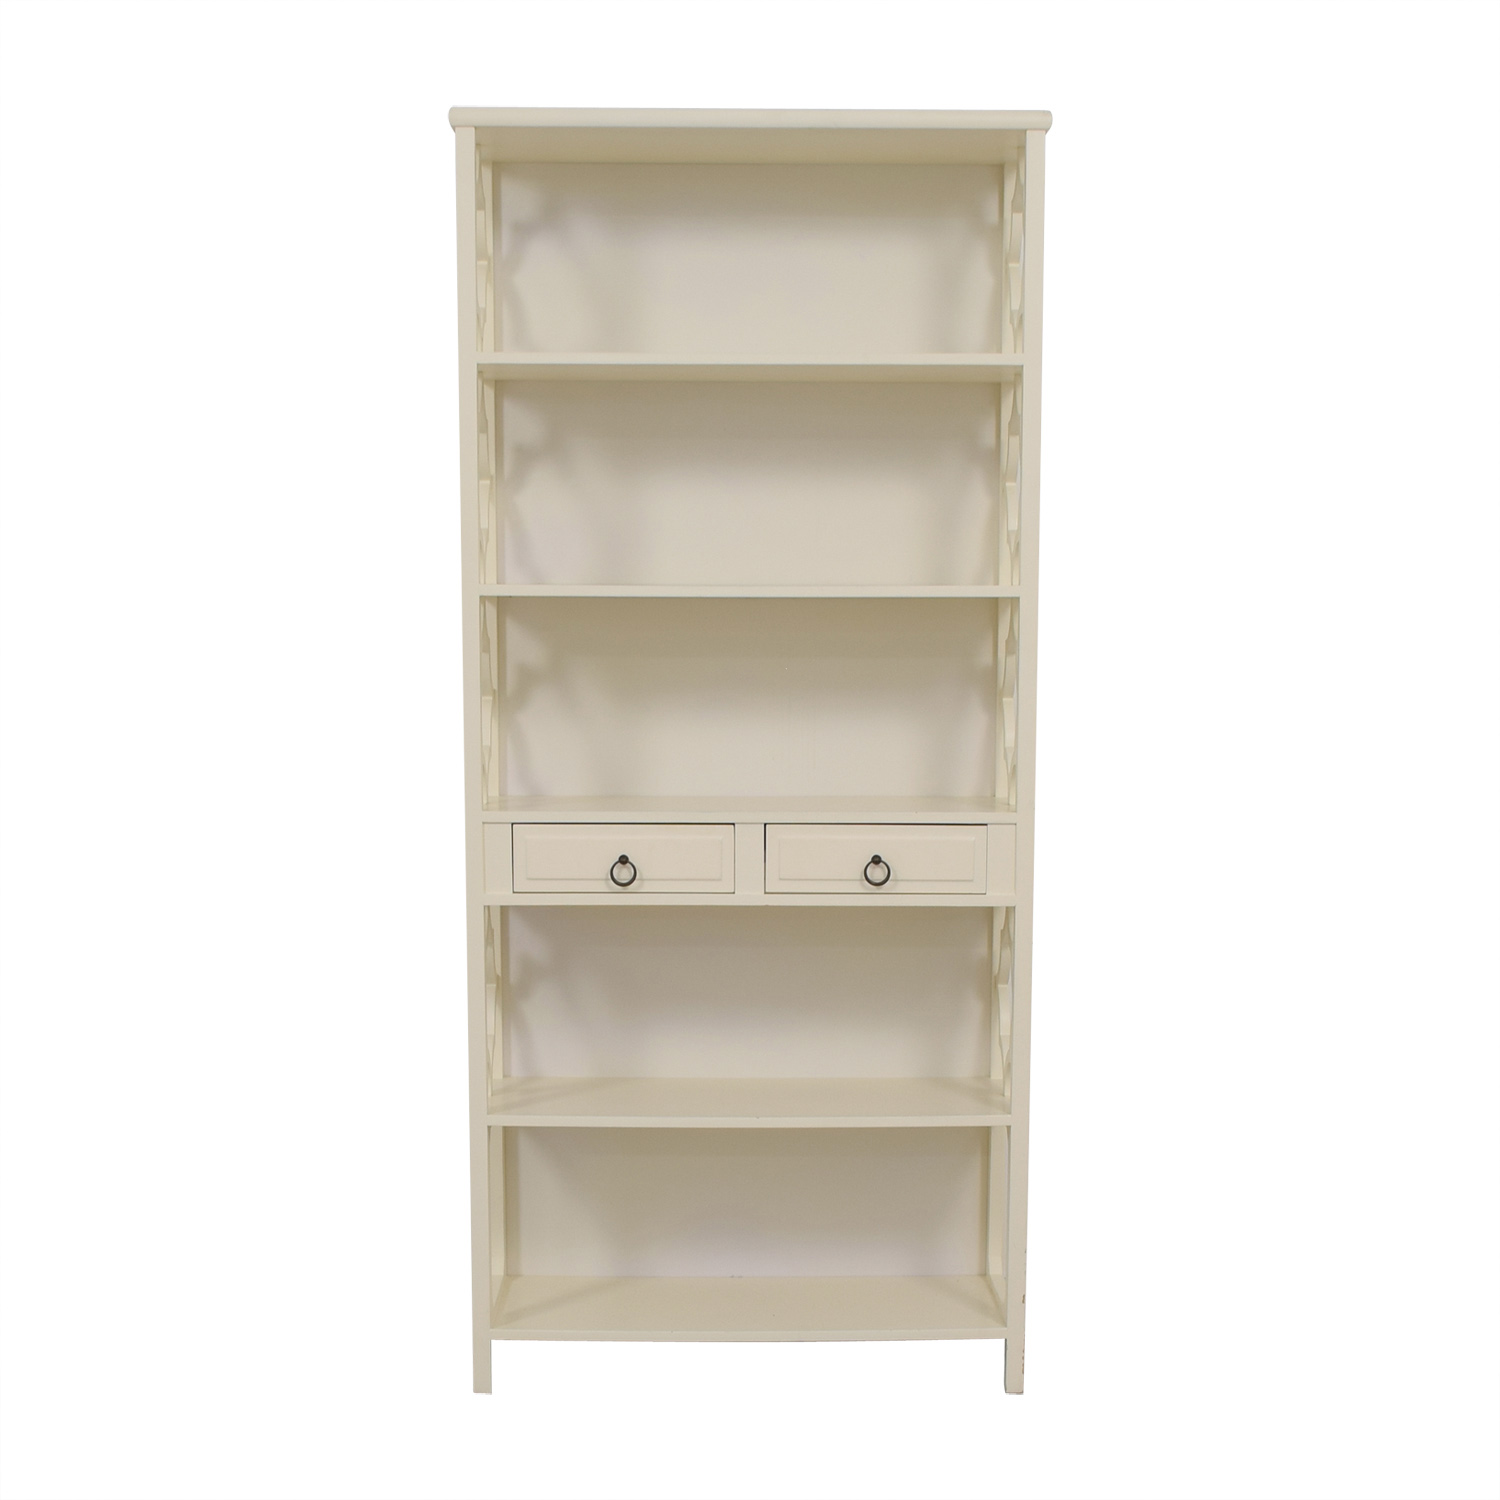 Serena & Lily Serena & Lily Hollywood Regency White Bookcase on sale